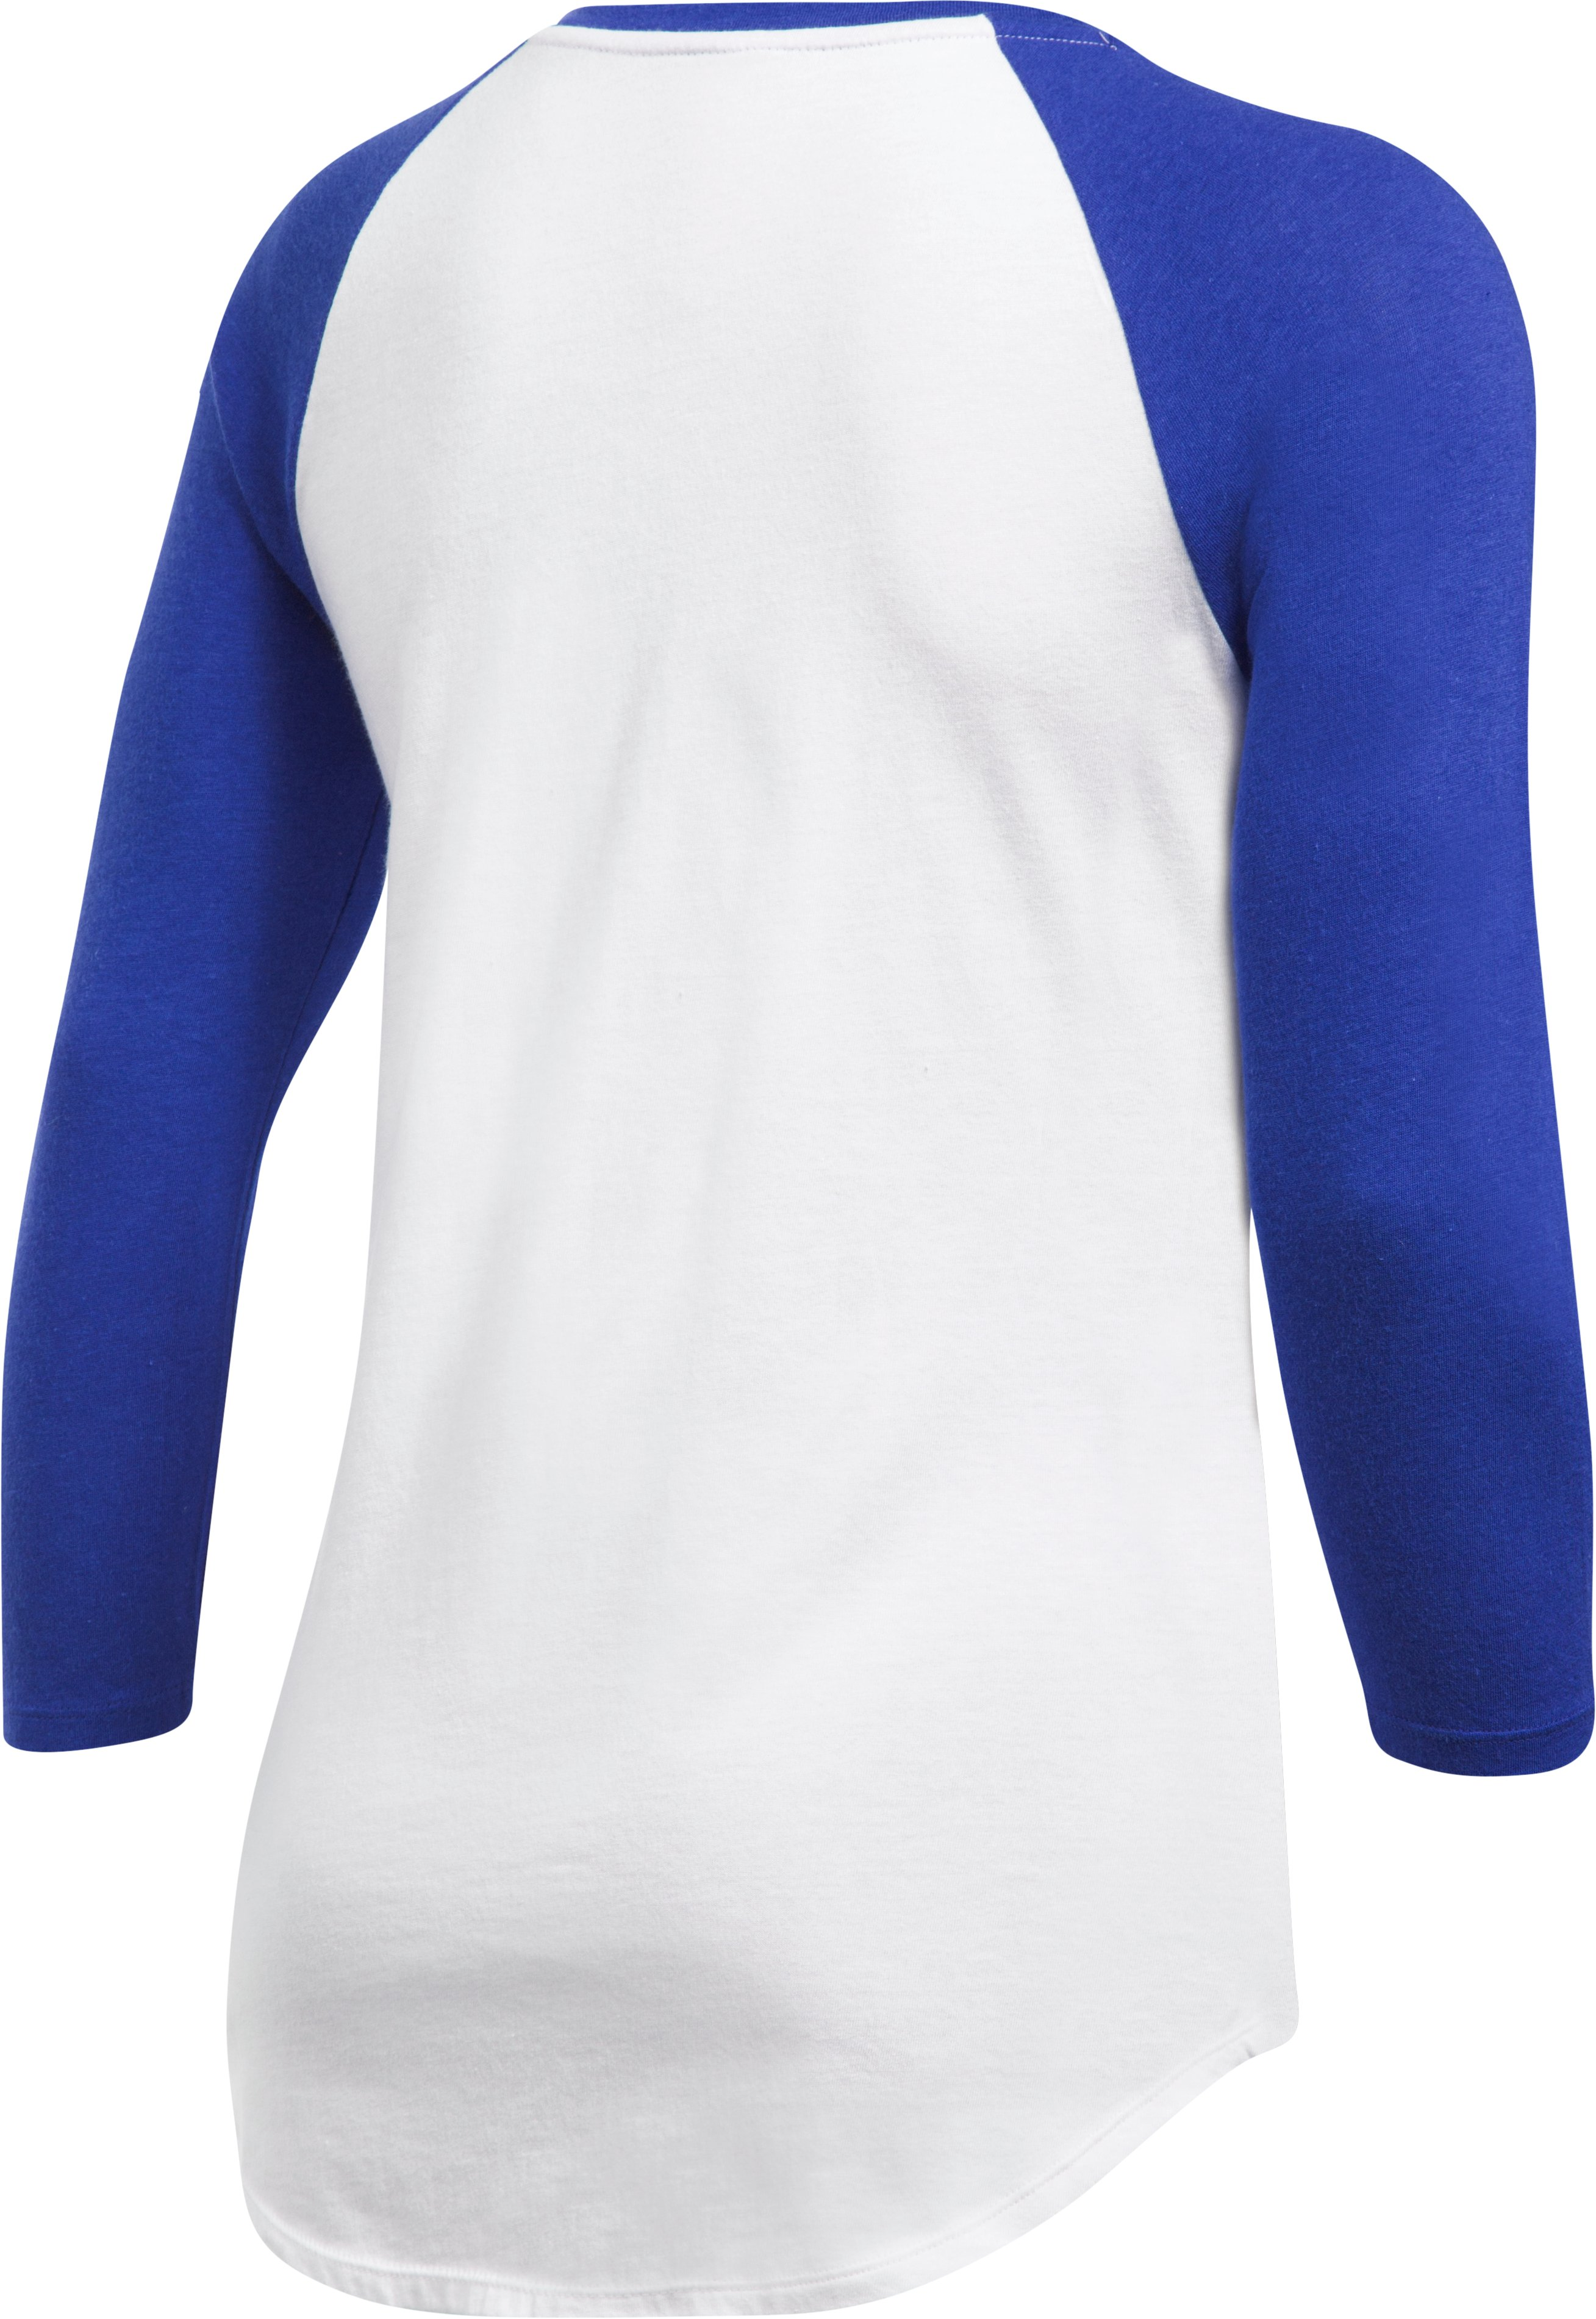 Women's Chicago Cubs ¾ Sleeve T-Shirt, Royal,